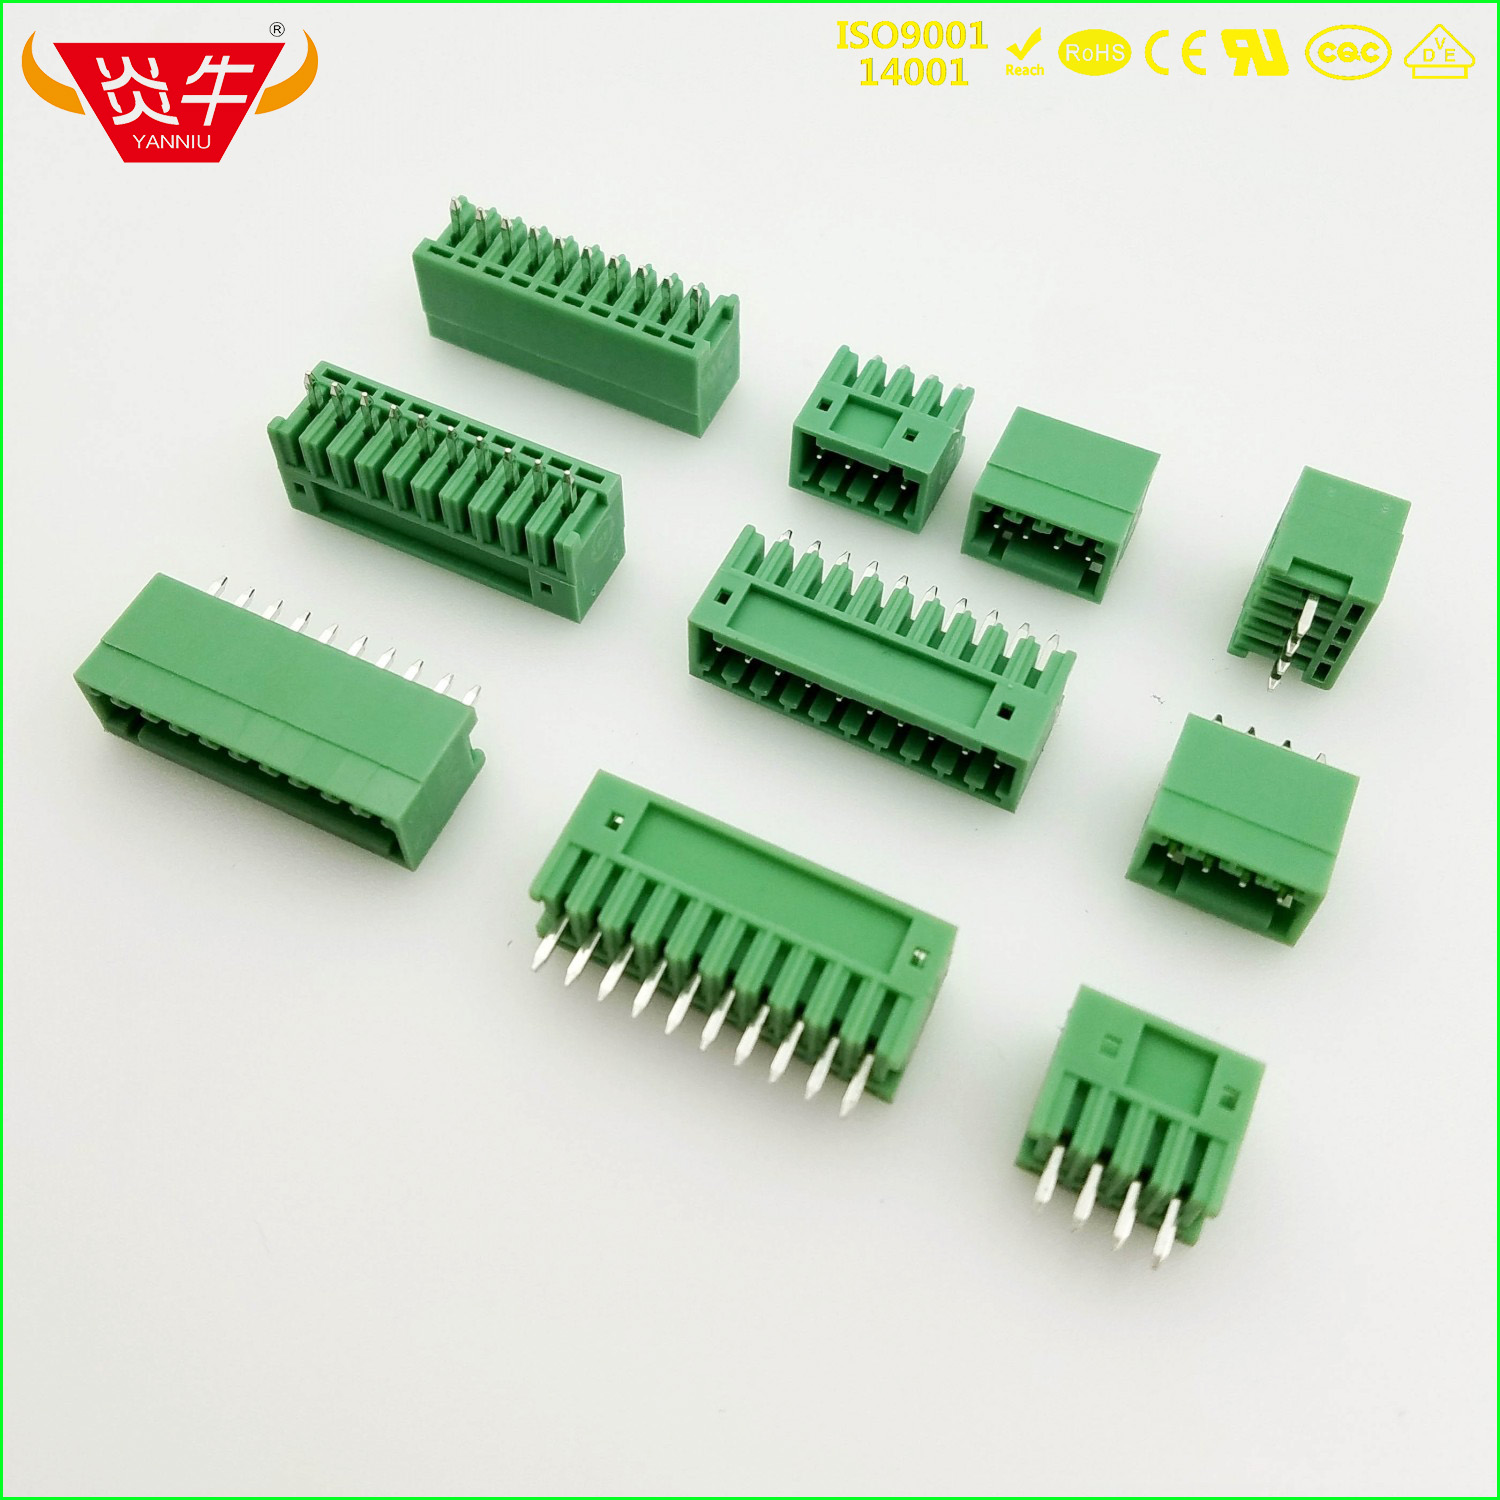 KF2EDGV 3.81mm 2//3//4//5//6P Male Straight Pin Socket Electrical Terminal Connector